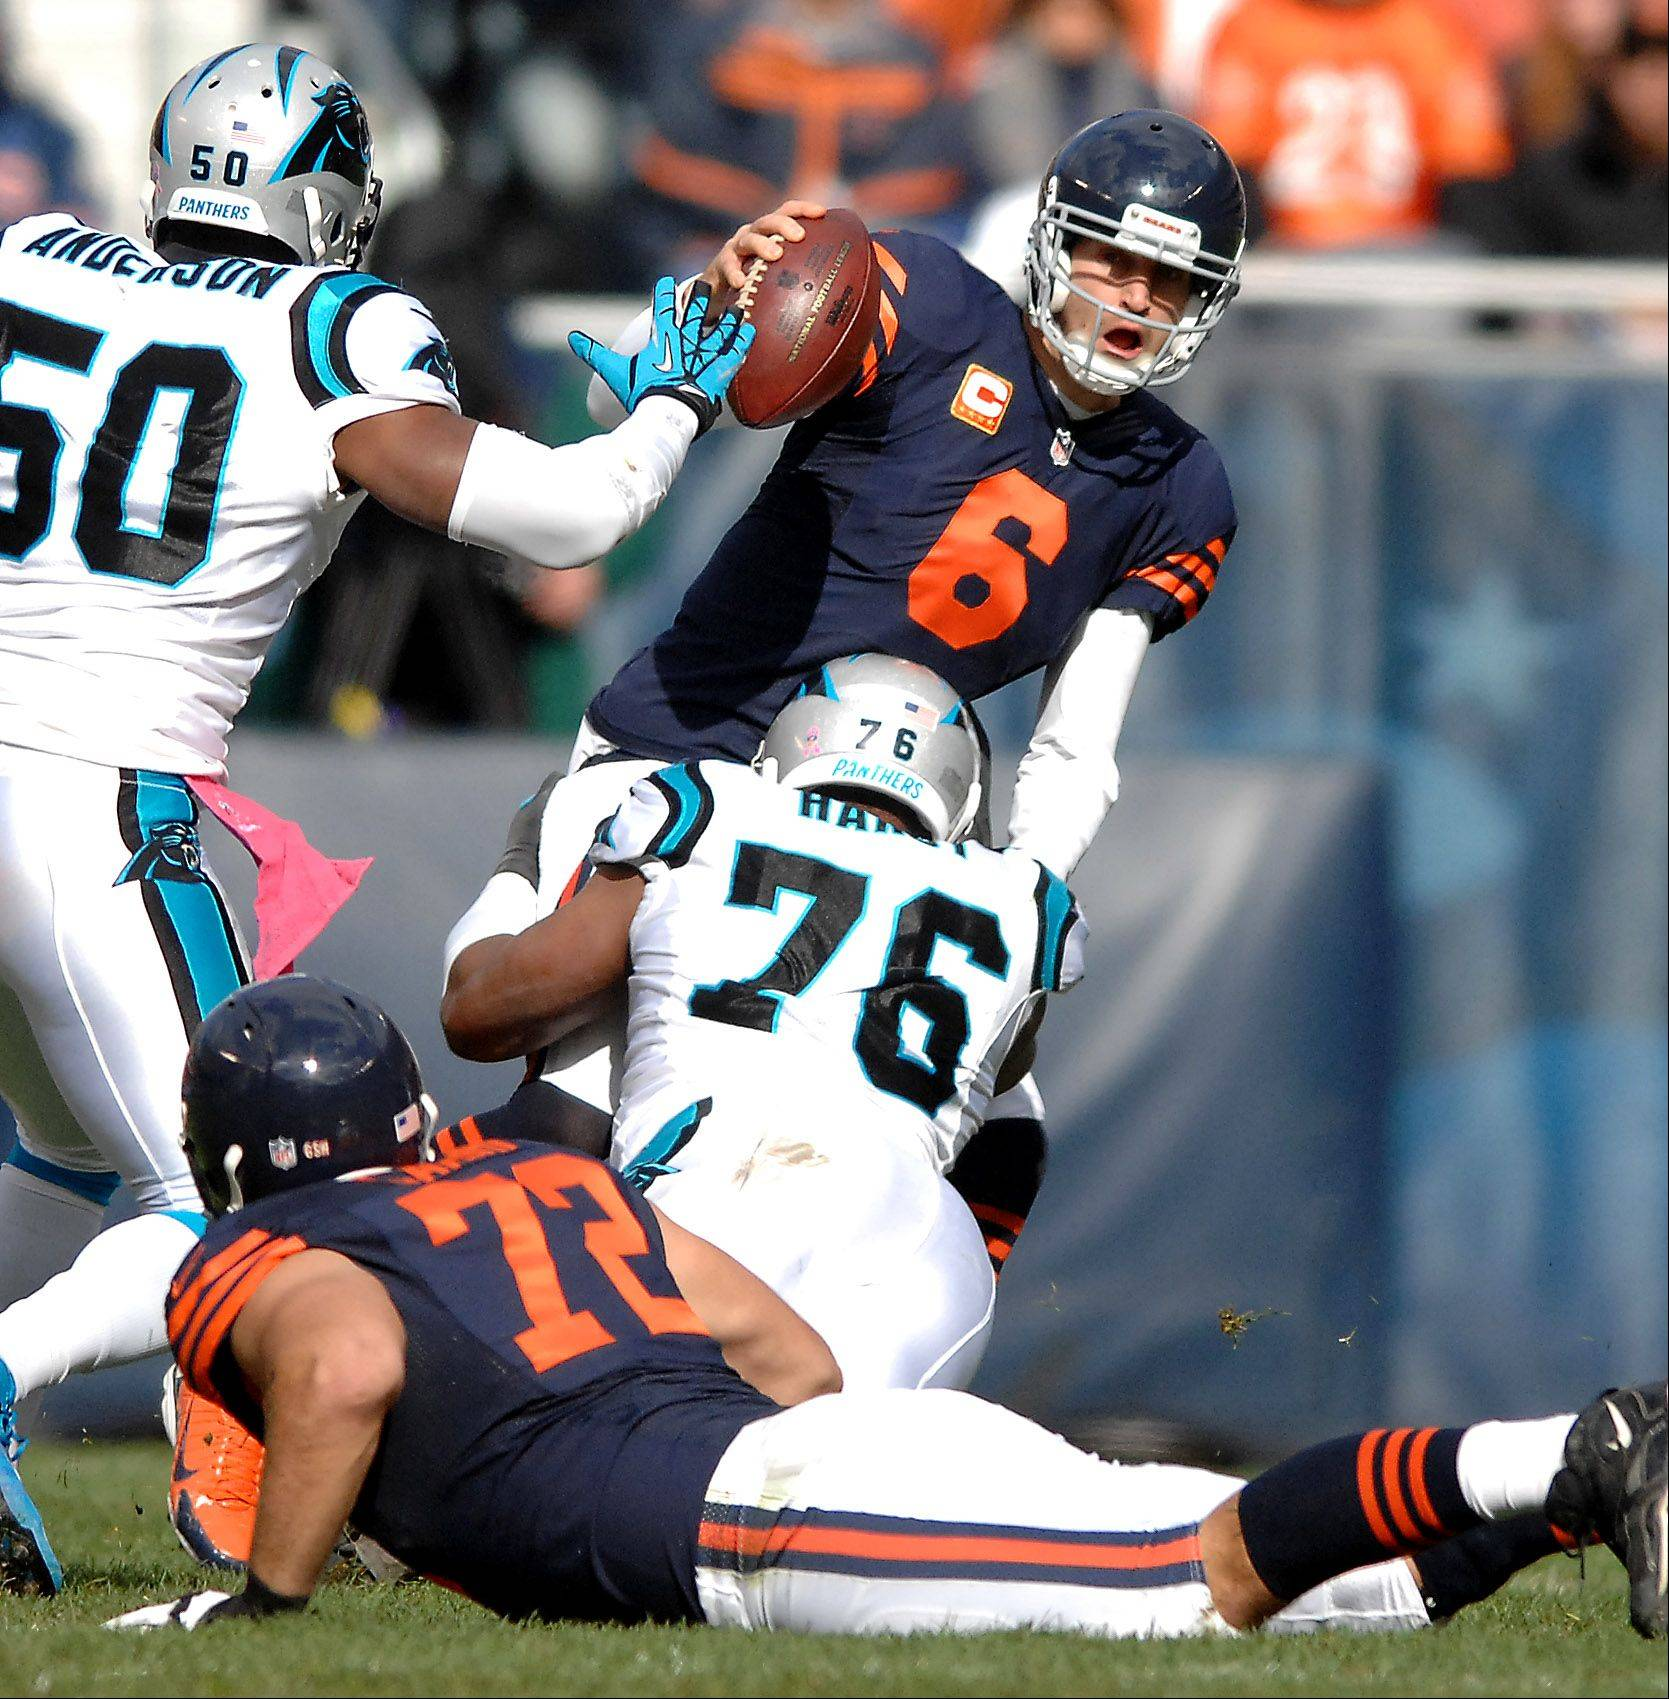 Chicago Bears quarterback Jay Cutler (6) is sacked by Carolina Panthers defensive end Greg Hardy (76) during Sunday's game at Soldier Field in Chicago.